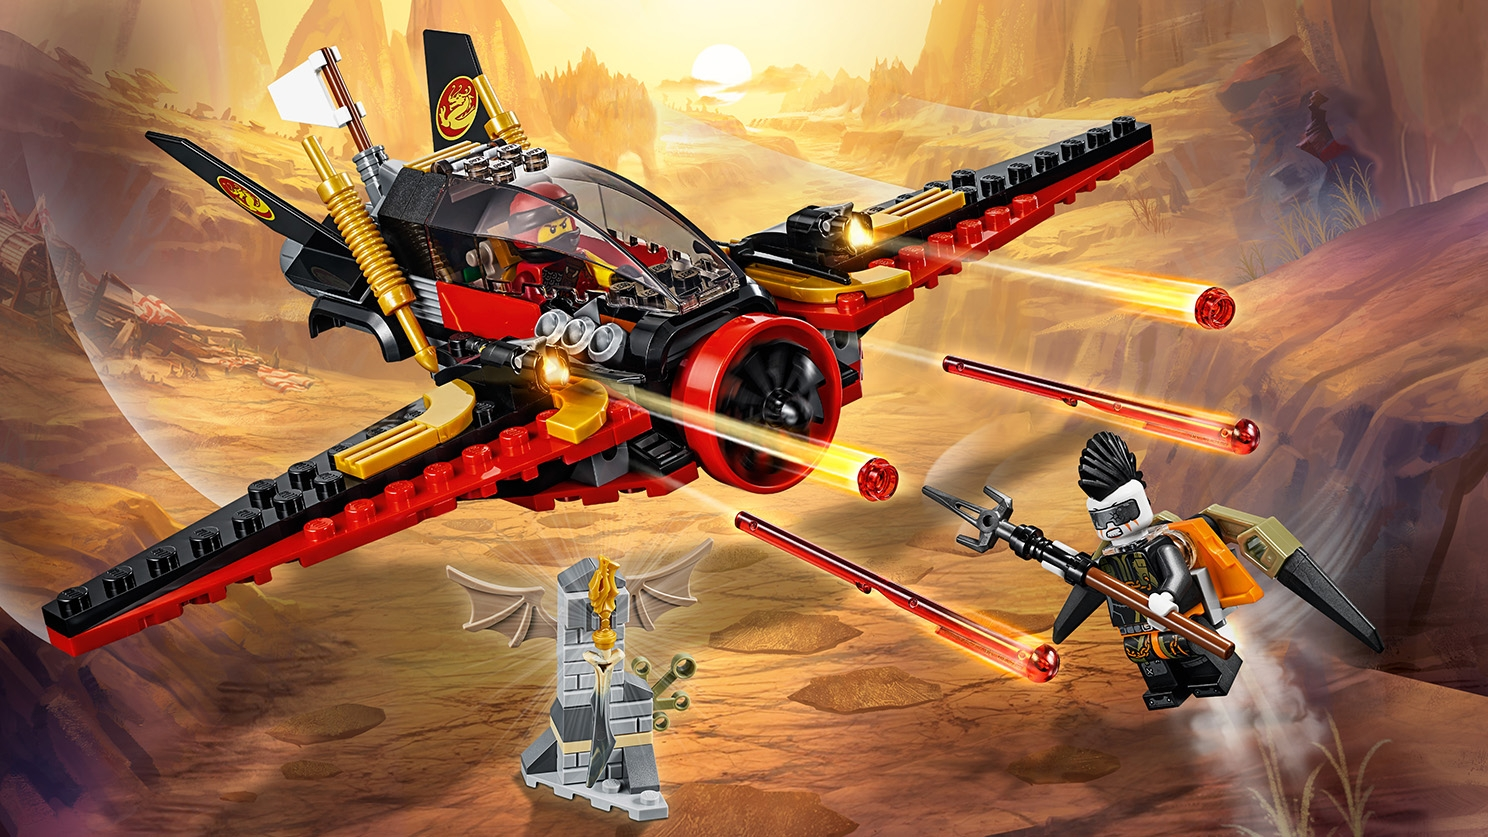 LEGO Ninjago - 70650 Destiny's Wing - Fire with red laser studs from this ninja plane in Kai's battle against an evil opponent.